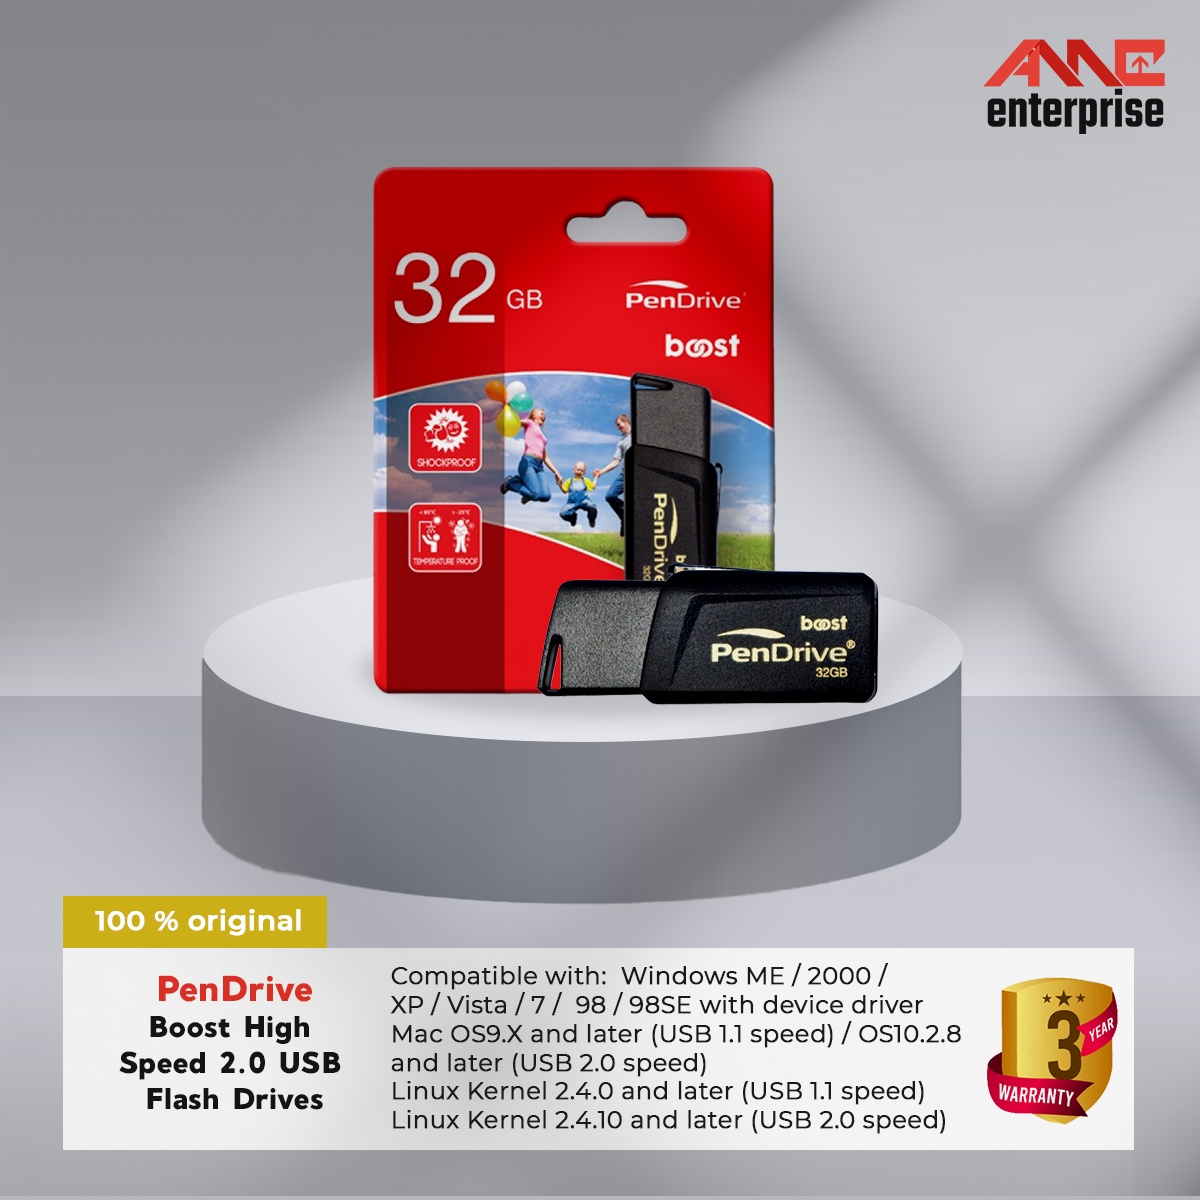 ORIGINAL PENDRIVE BOOST HIGH SPEED 2.0 (3).png